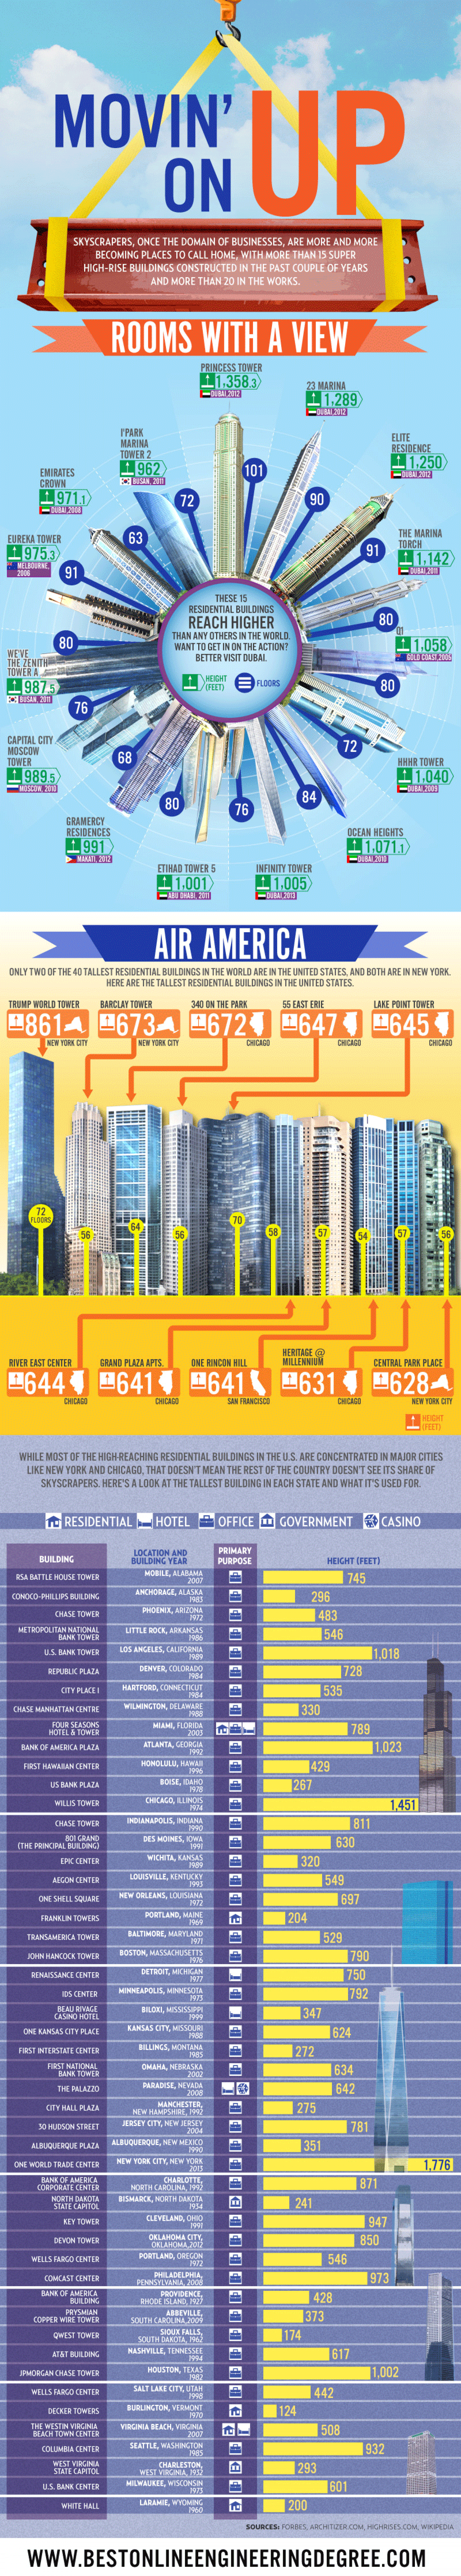 Movin' on Up Infographic